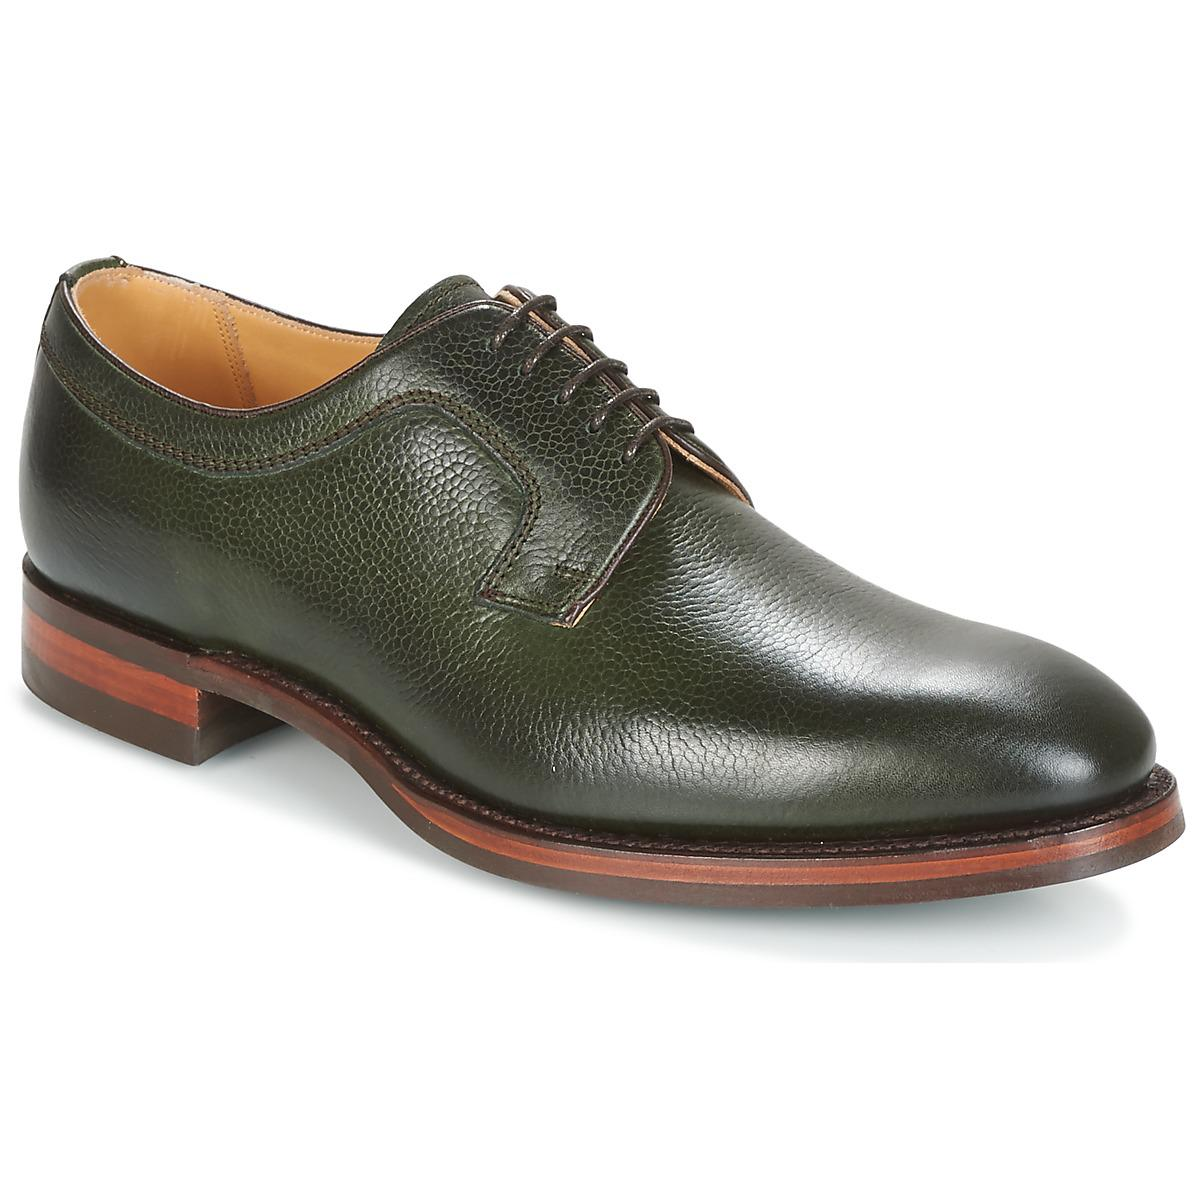 Barker Skye Casual Shoes in Green for Men